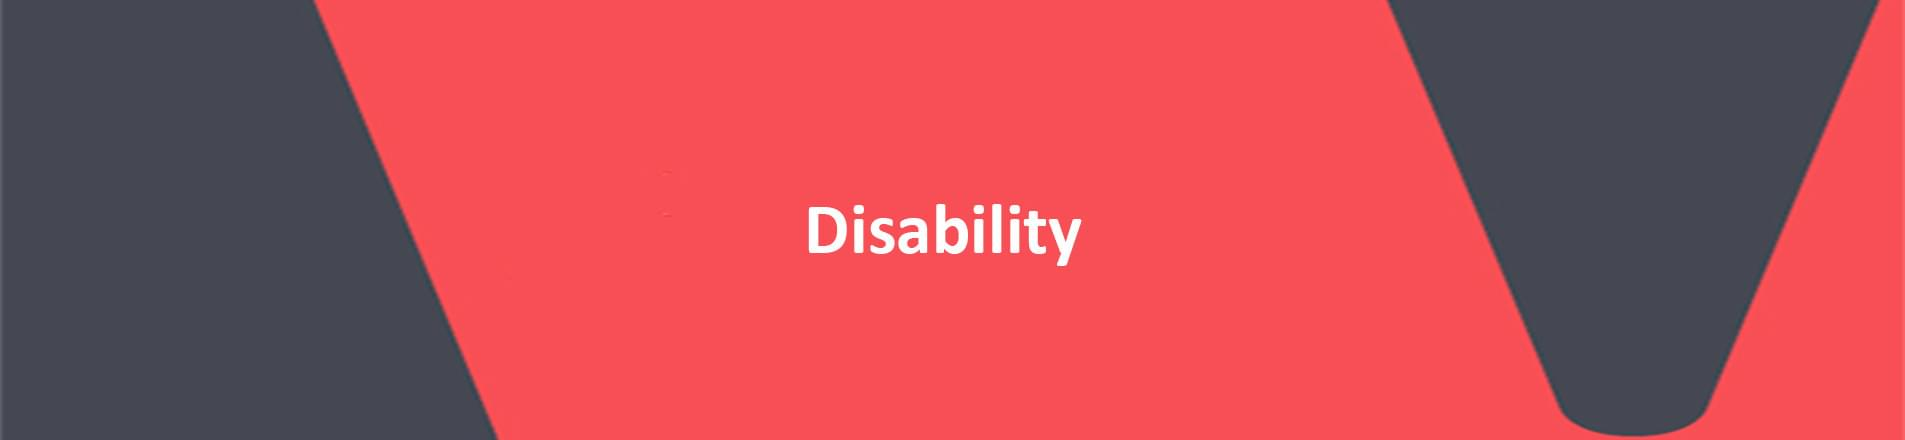 Word Disability on red VERCIDA branded background